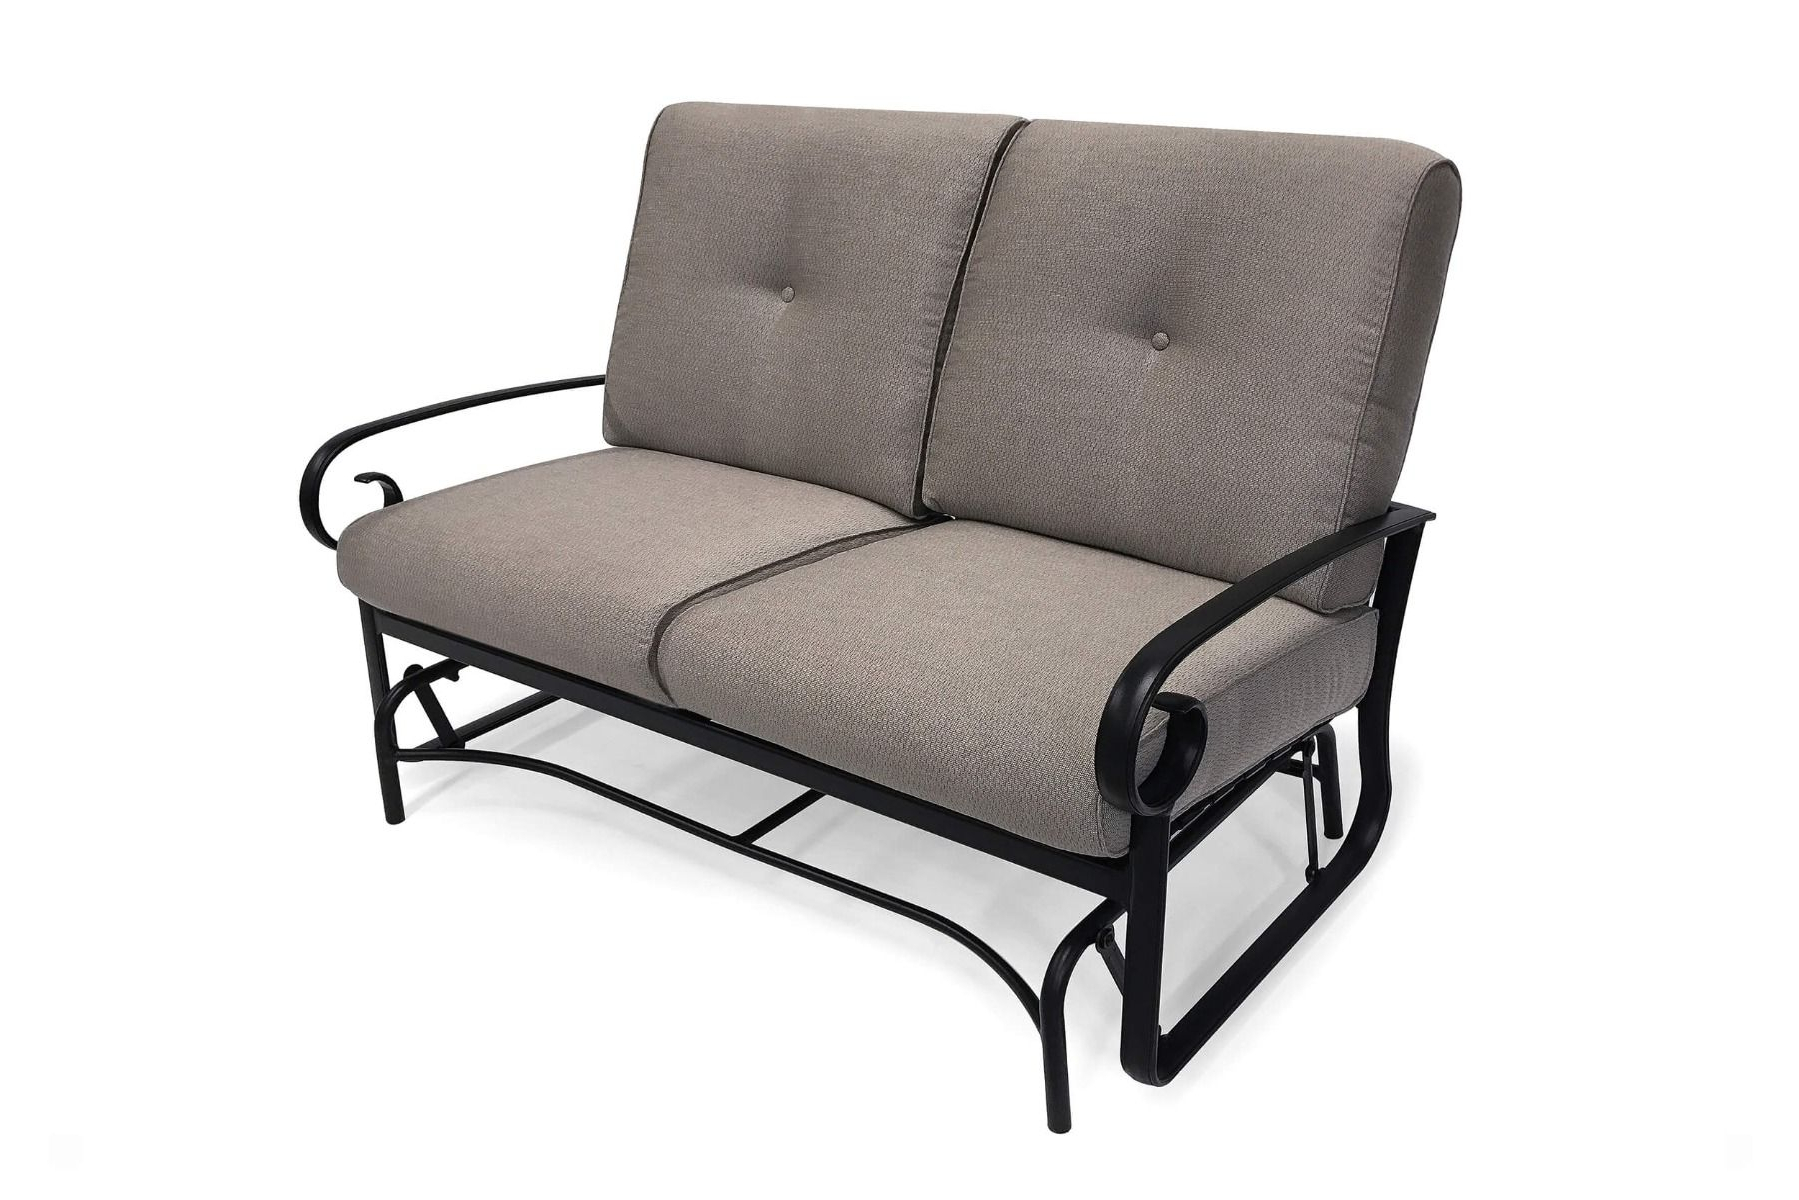 Best And Newest Outdoor Loveseat Gliders With Cushion With Veneto Cushion Loveseat Glider (Gallery 14 of 30)